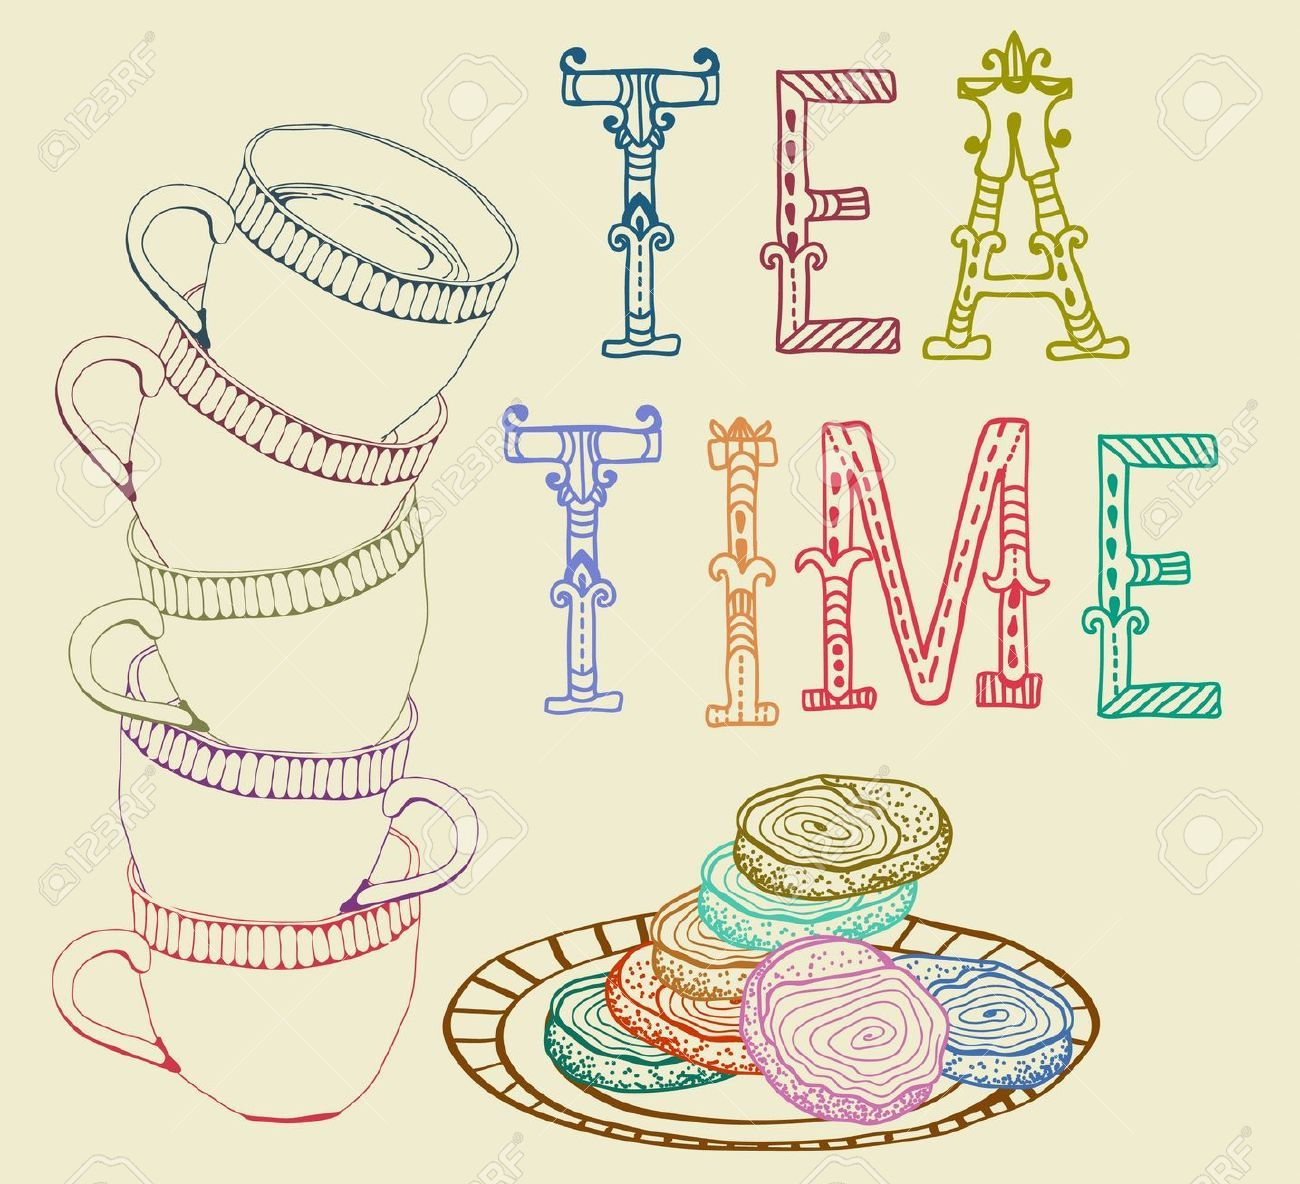 Vintage tea time clipart.